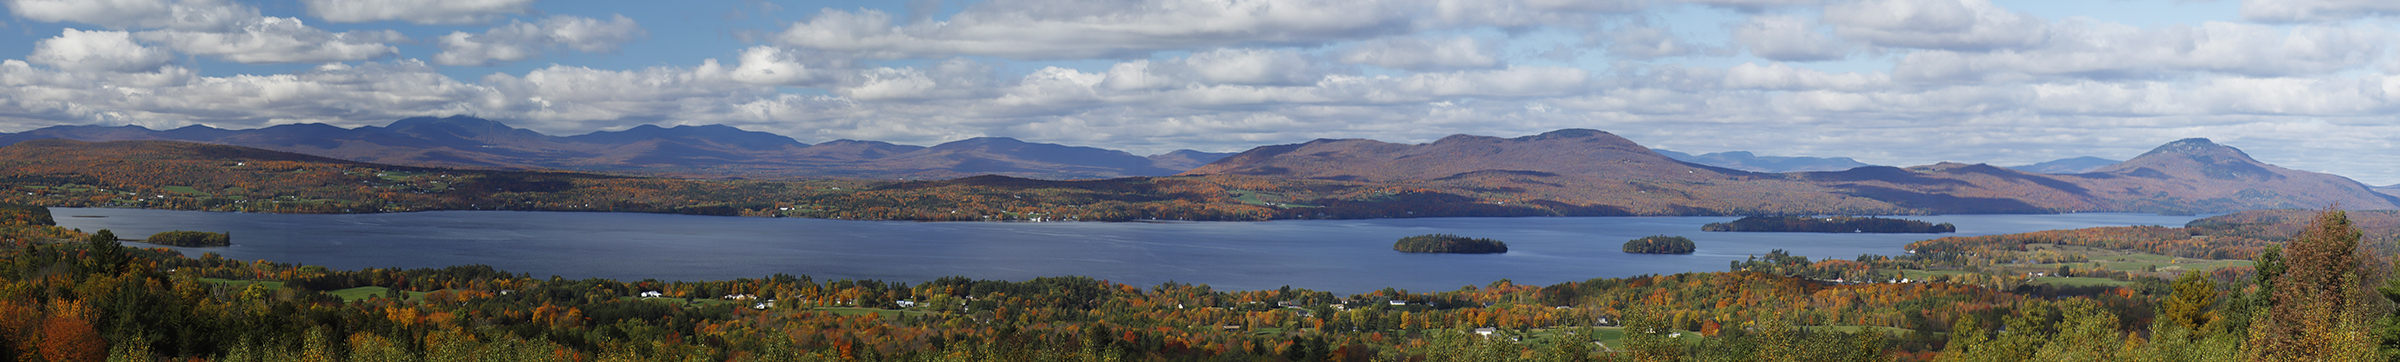 Don't Undermine Memphremagog's Purity